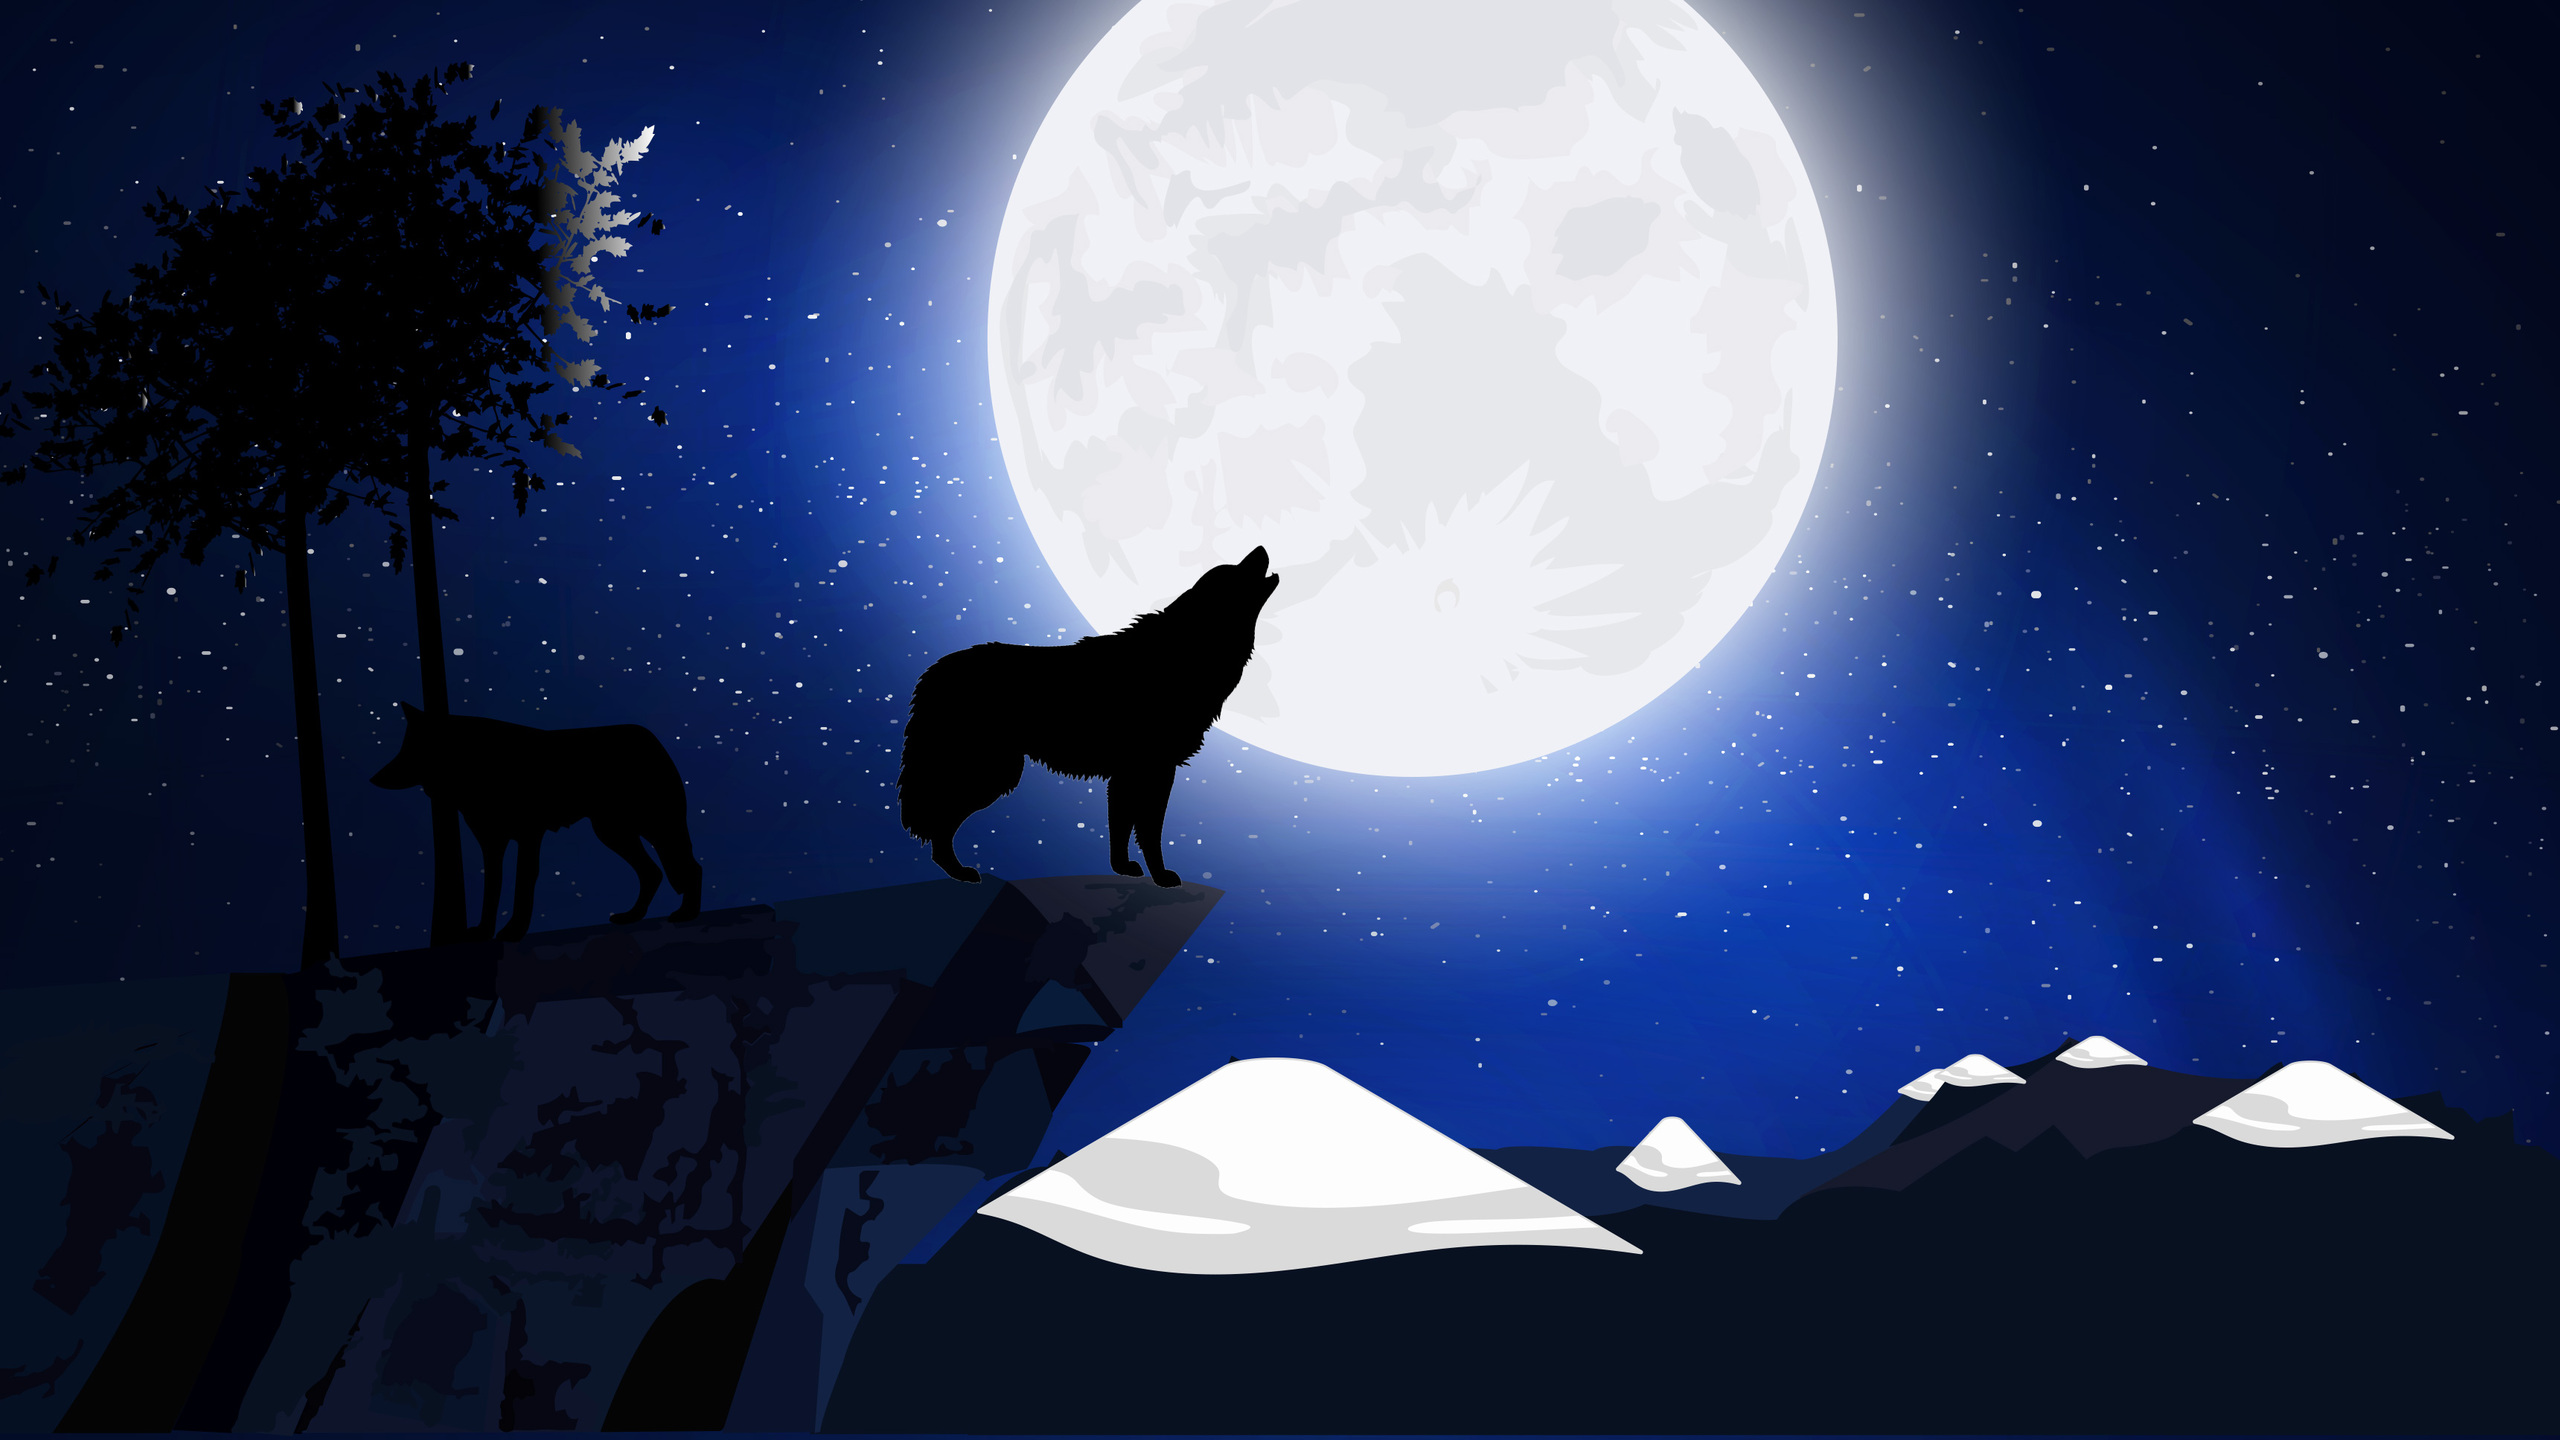 2560x1440 wolf howling 1440p resolution hd 4k wallpapers - Wolf howling hd ...